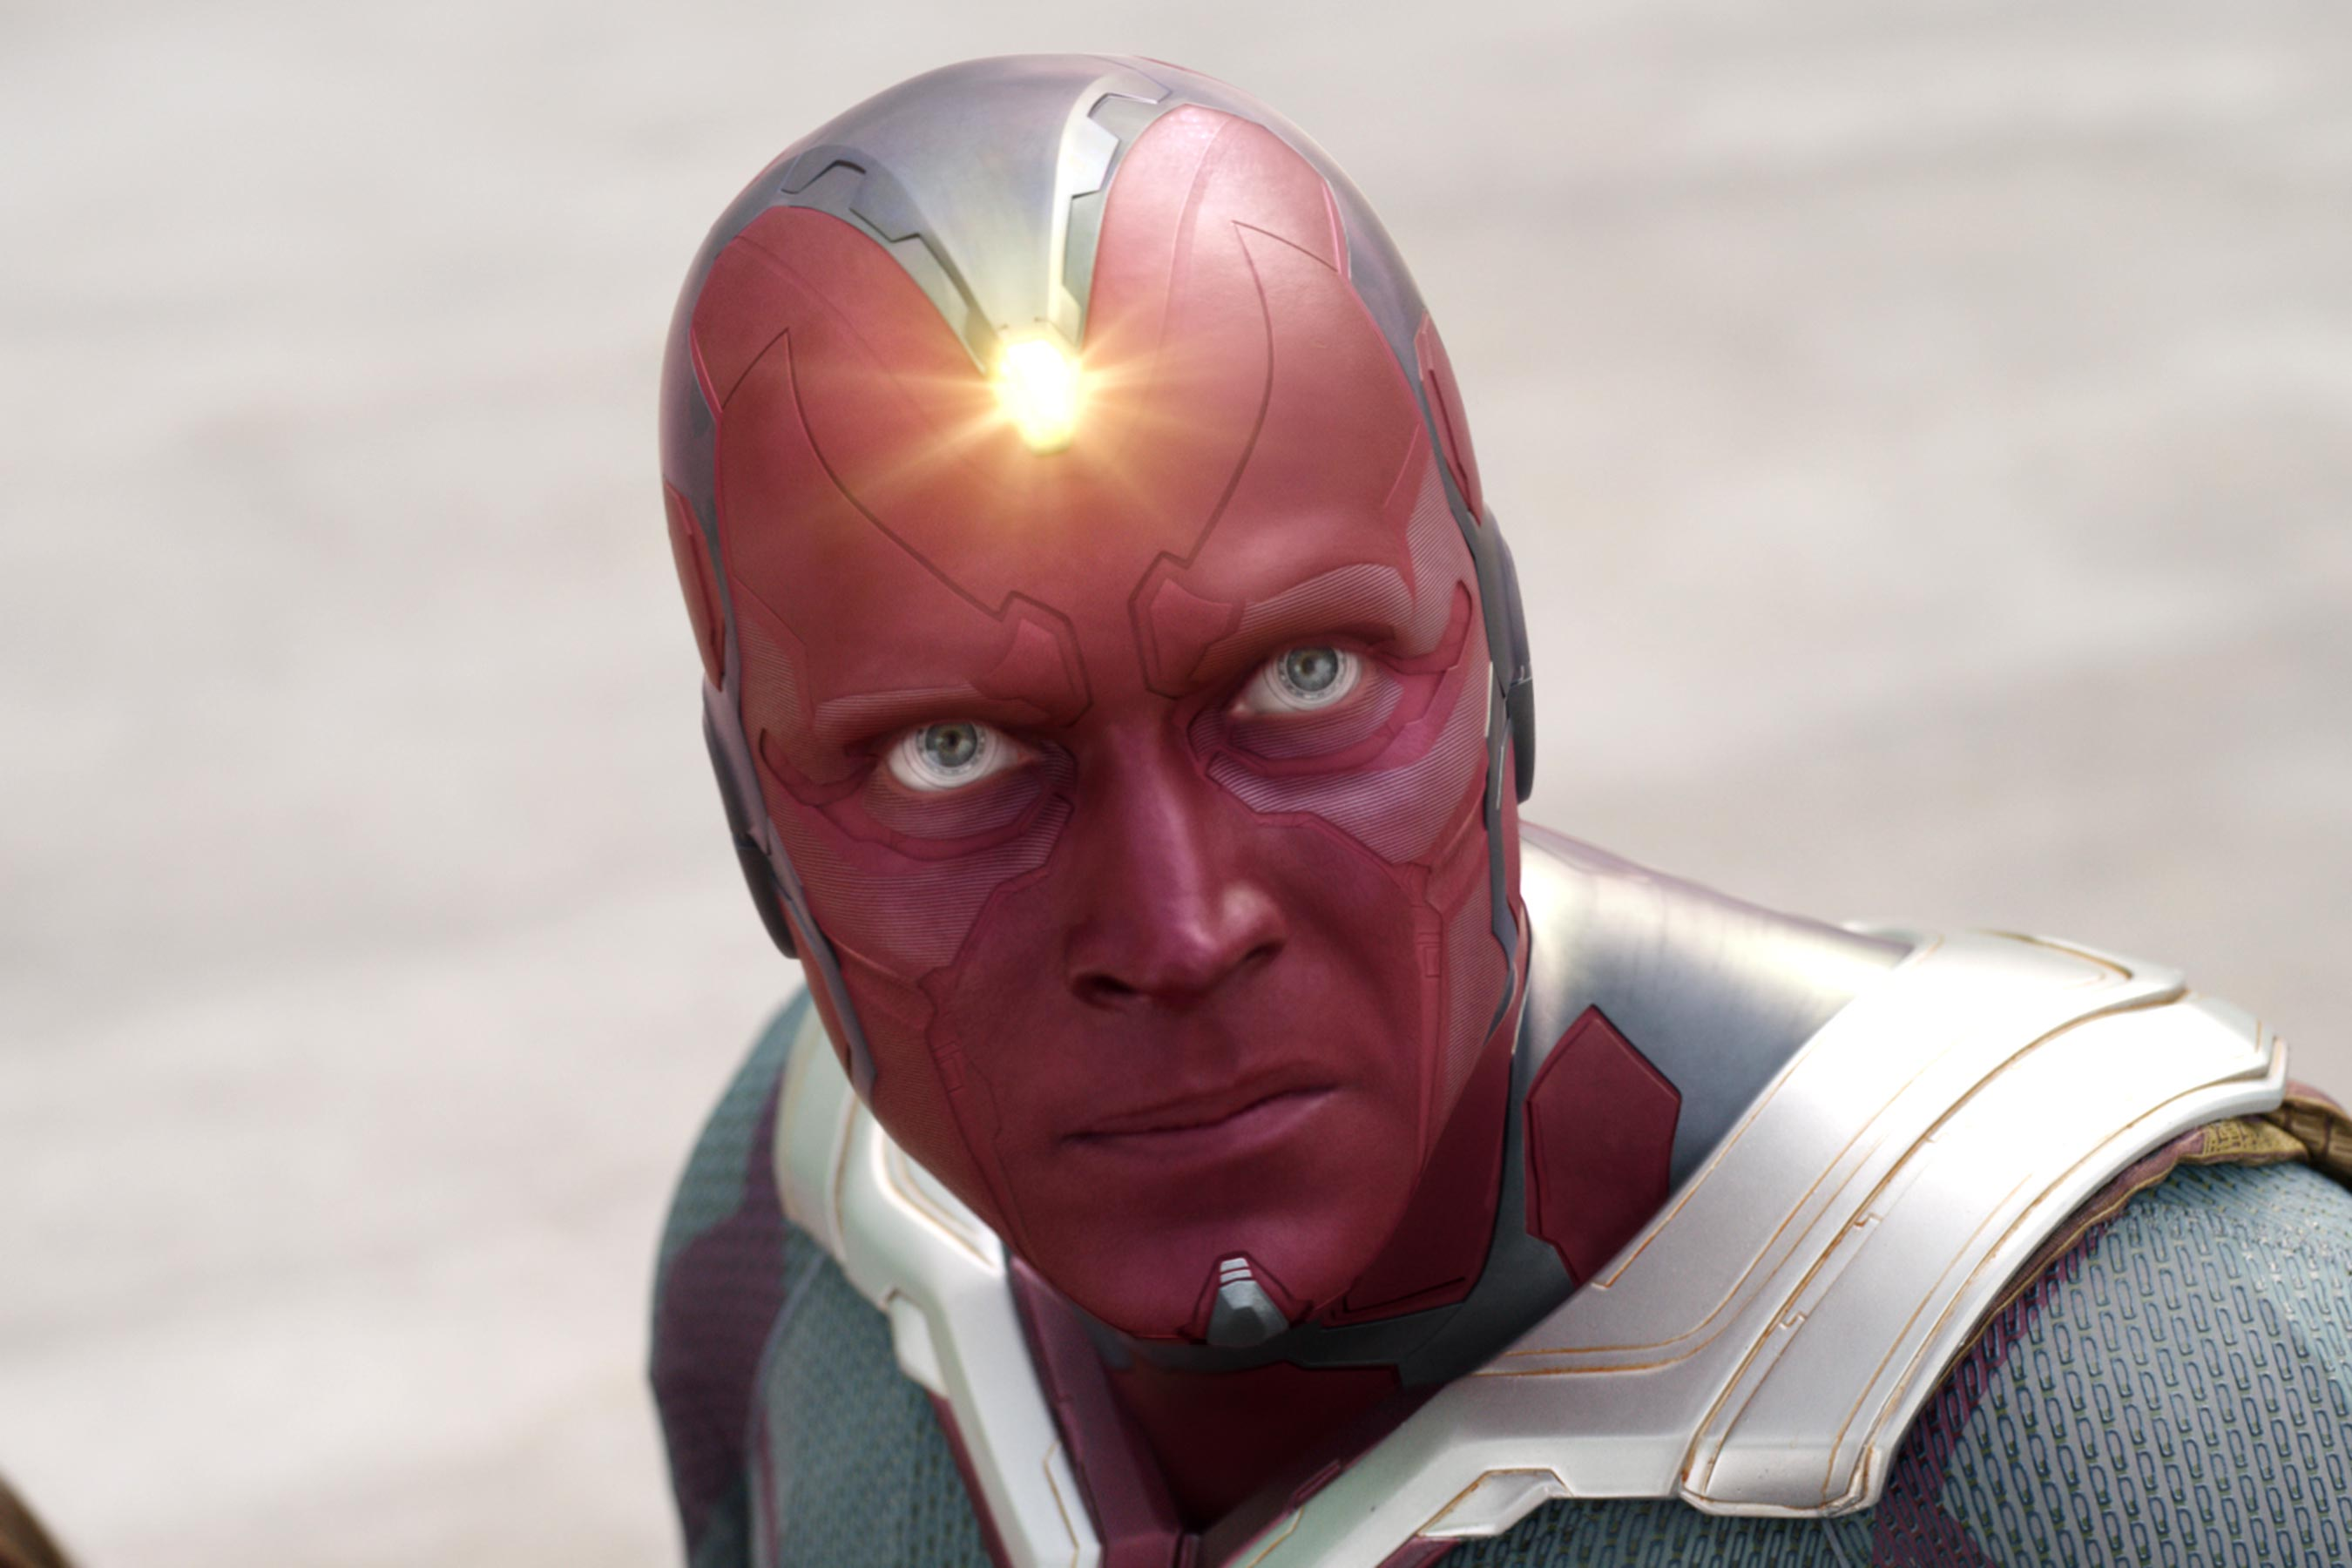 The Vision (Paul Bettany) in Captain America: Civil War